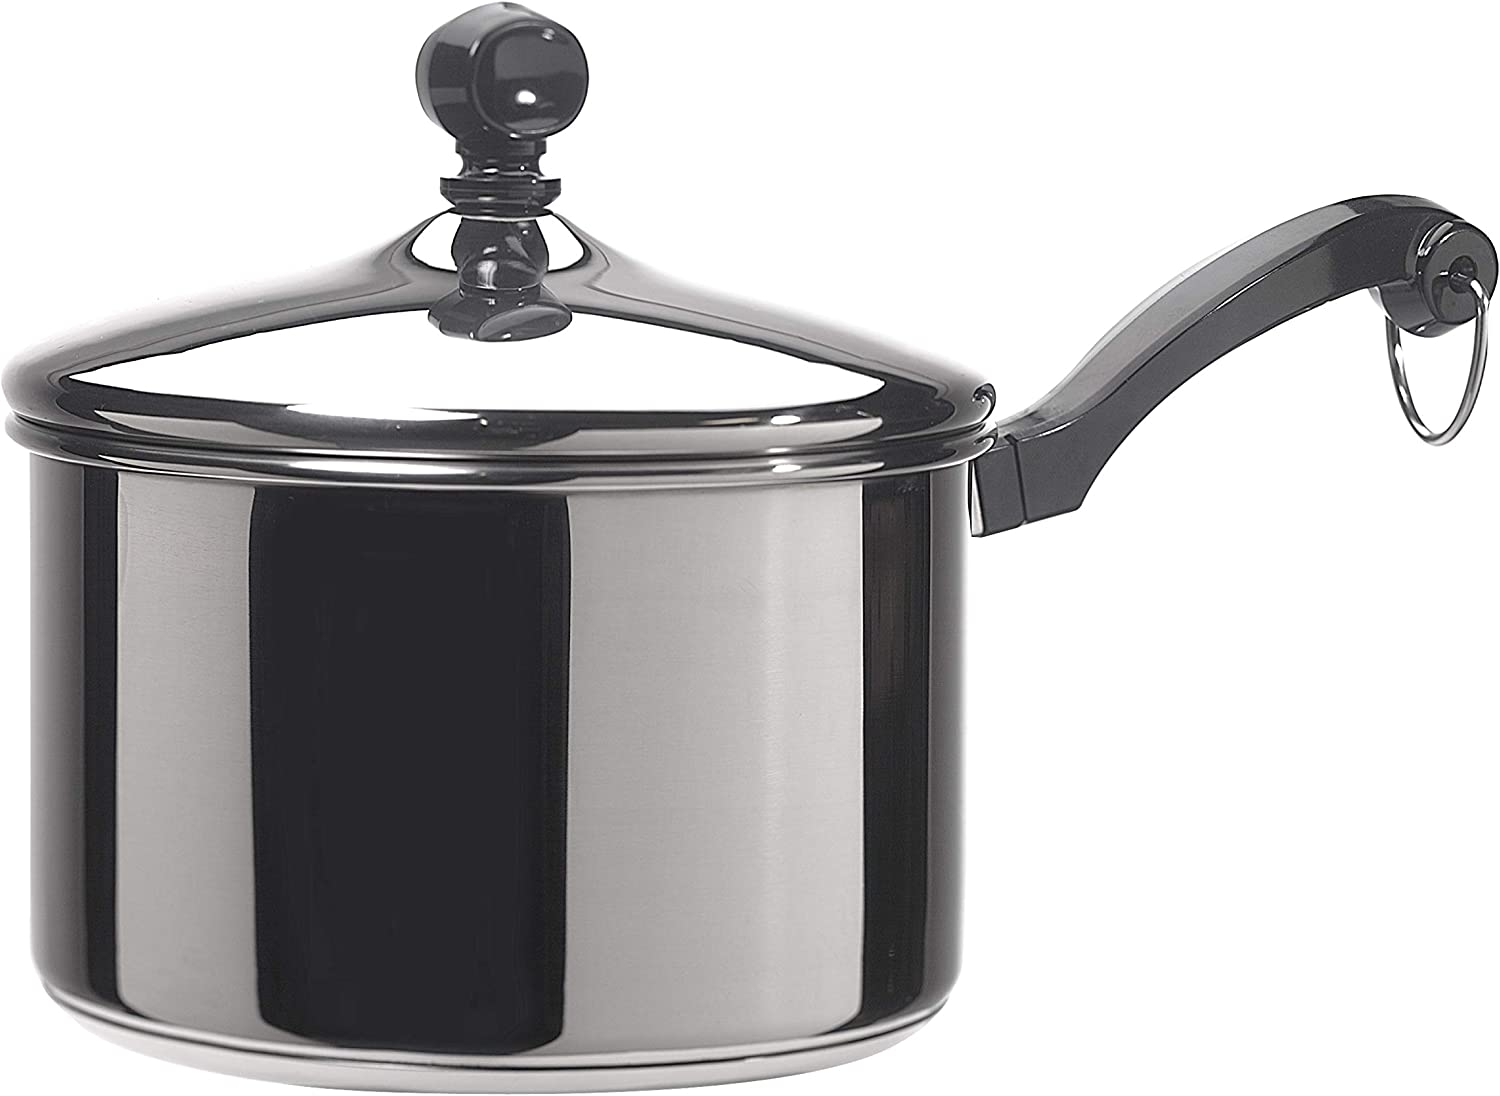 Farberware Classic Stainless Steel 2-Quart Covered Saucepan - - Silver